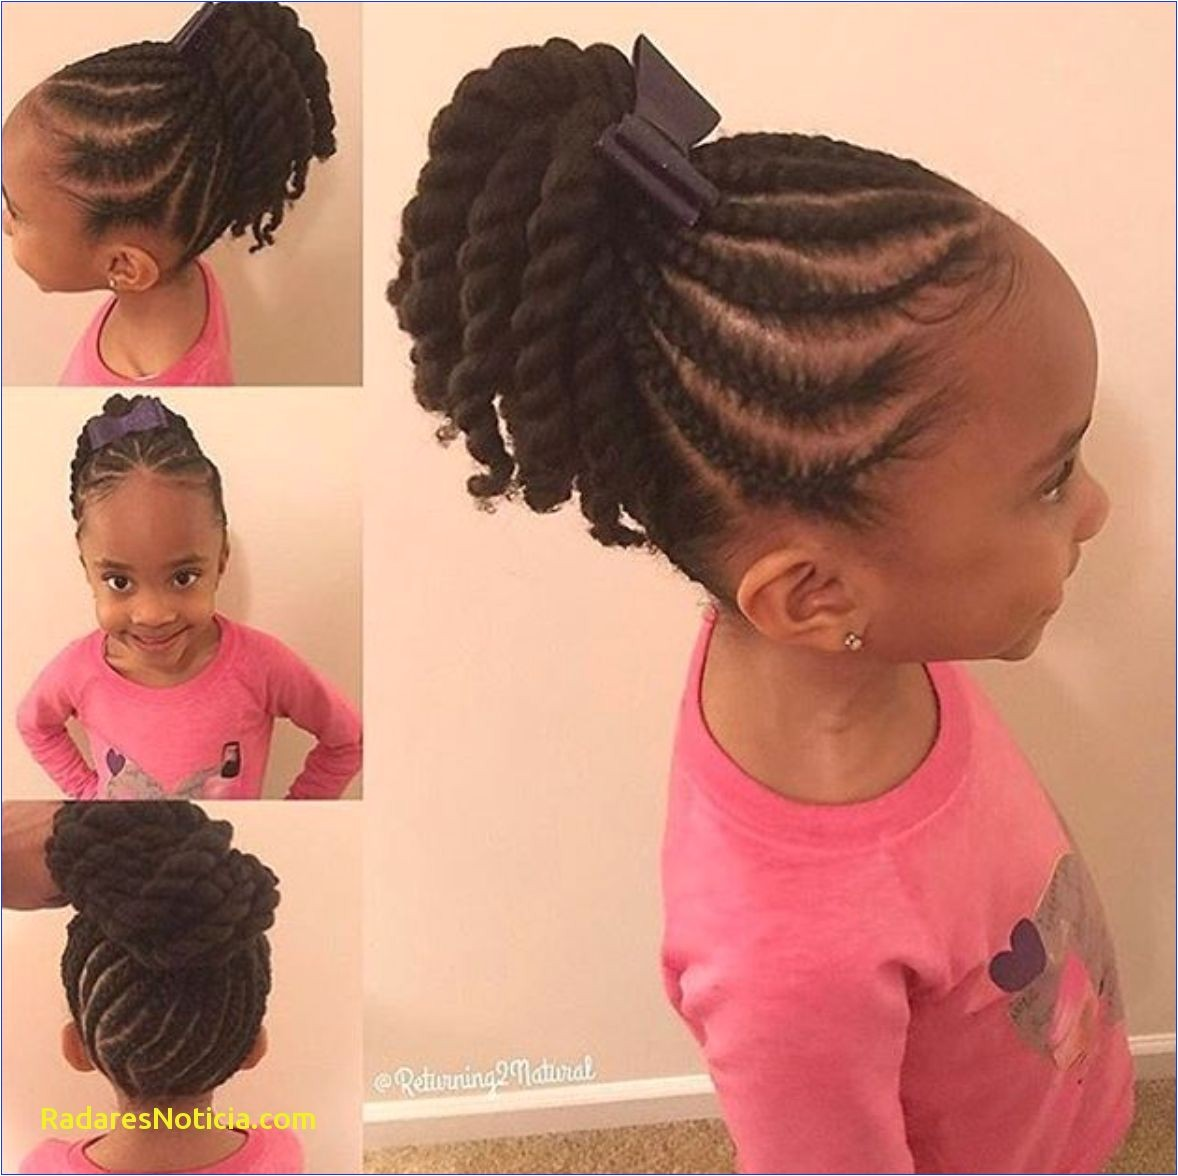 12 year olds So adorable via returning2natural hairstyle gallery adorable via returning2natural 5